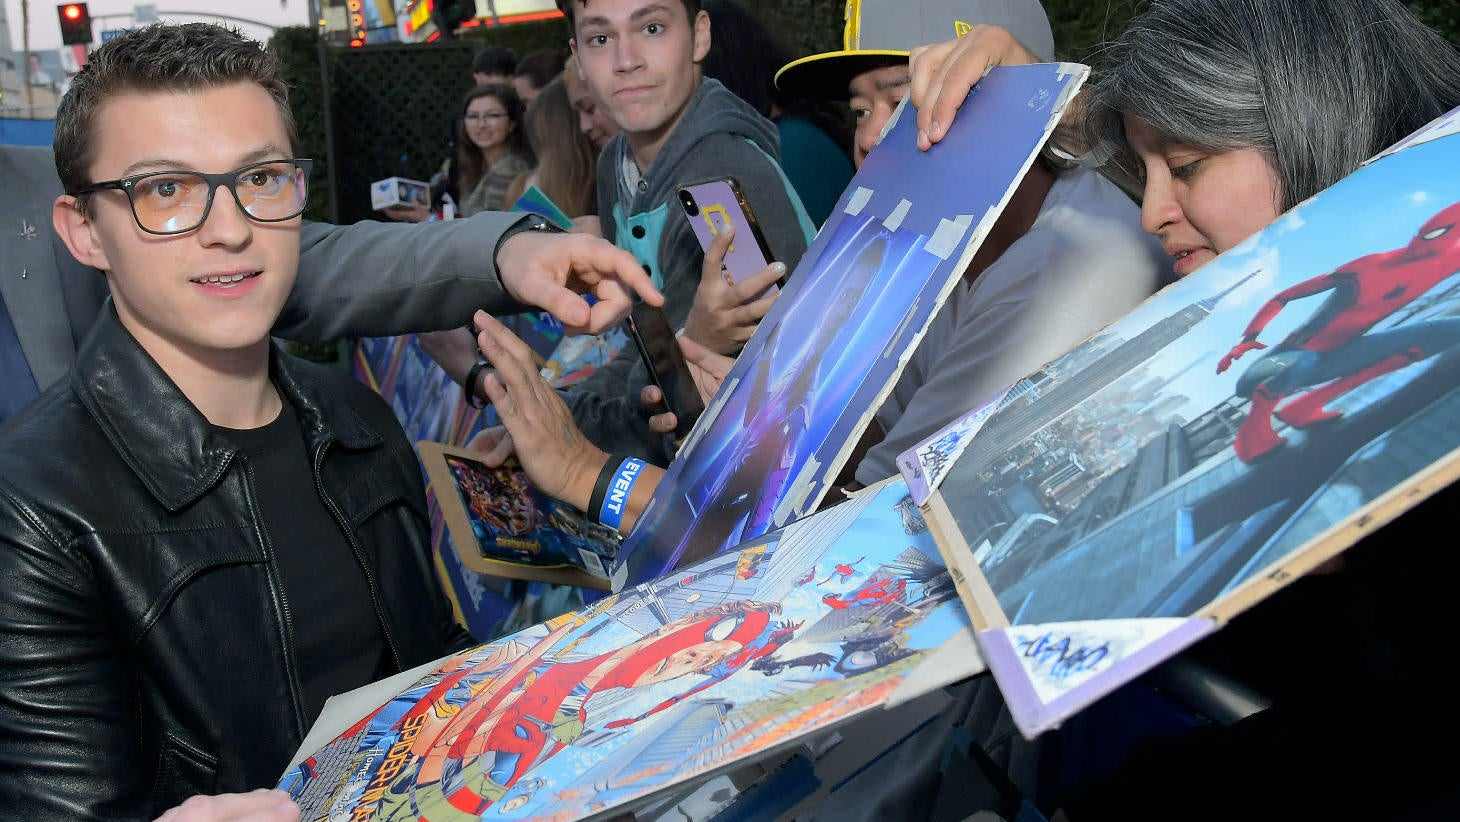 Tom Holland Discusses His Harry Potter Obsession And Back To The Future Interest